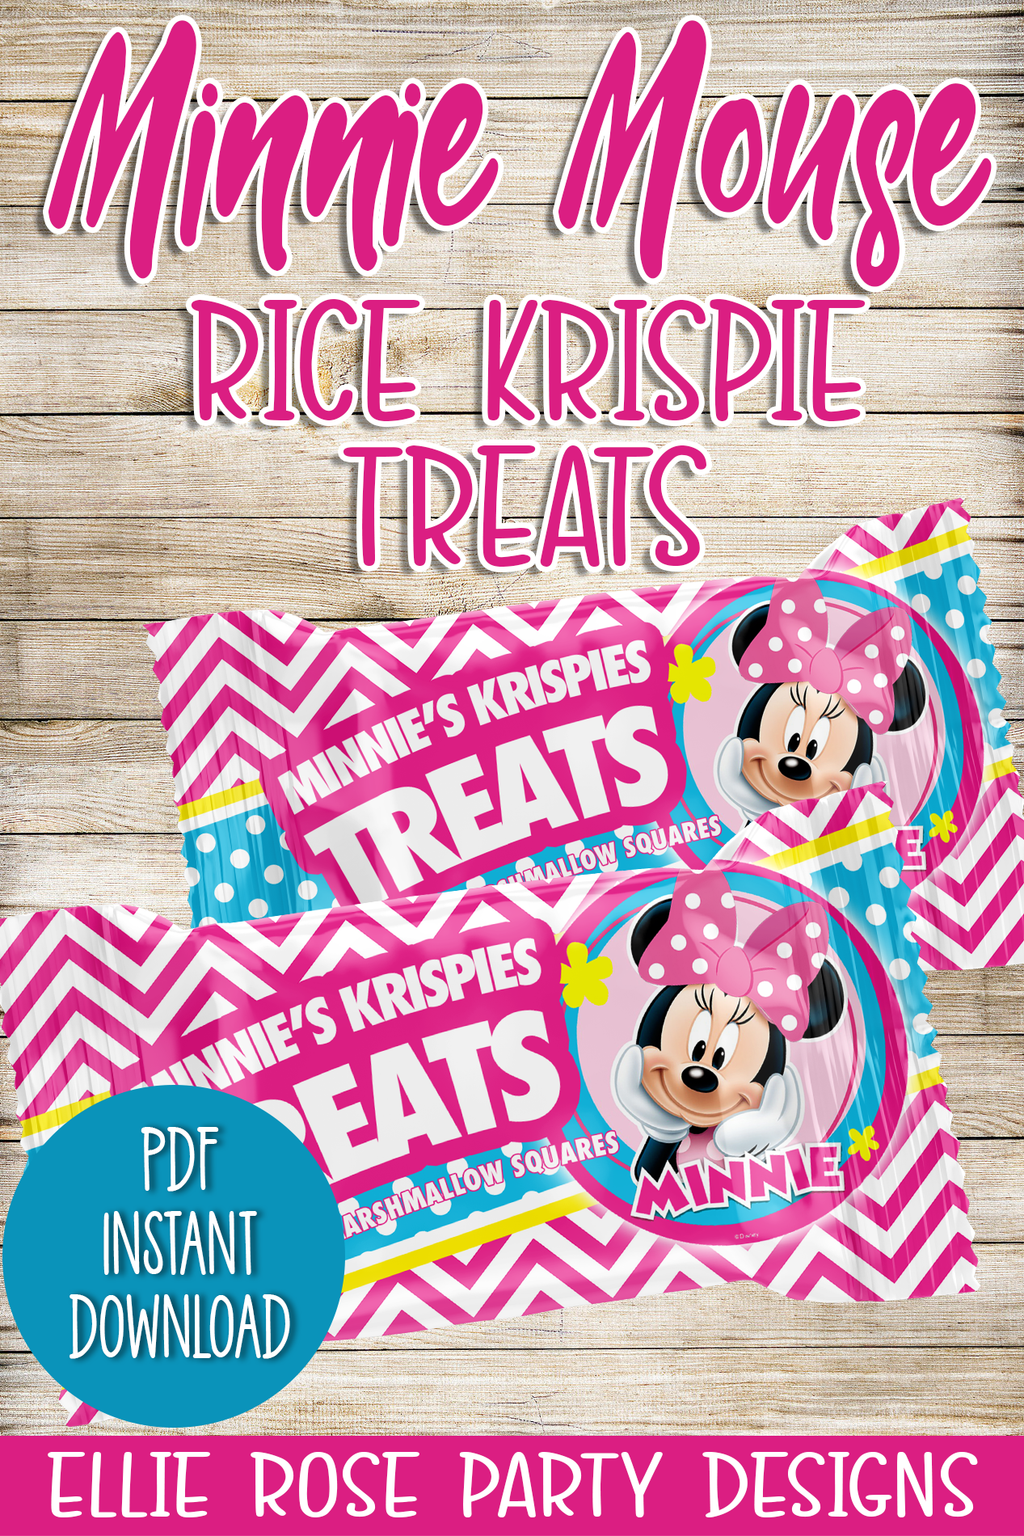 Minnie Mouse Bowtique Rice Krispie Marshmallow Treats Printables [INSTANT DOWNLOAD]